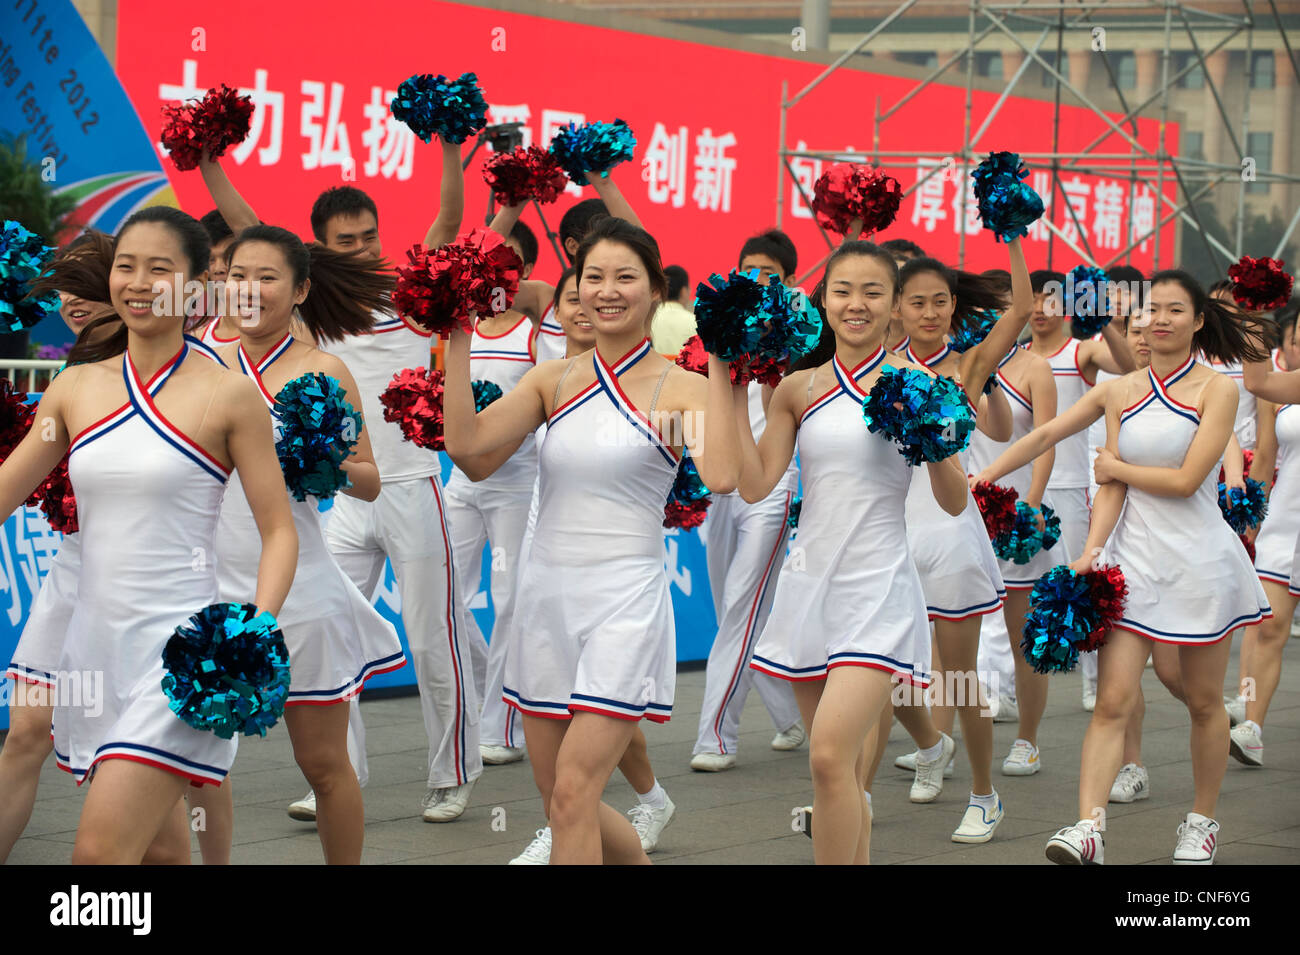 Chinese performers. - Stock Image